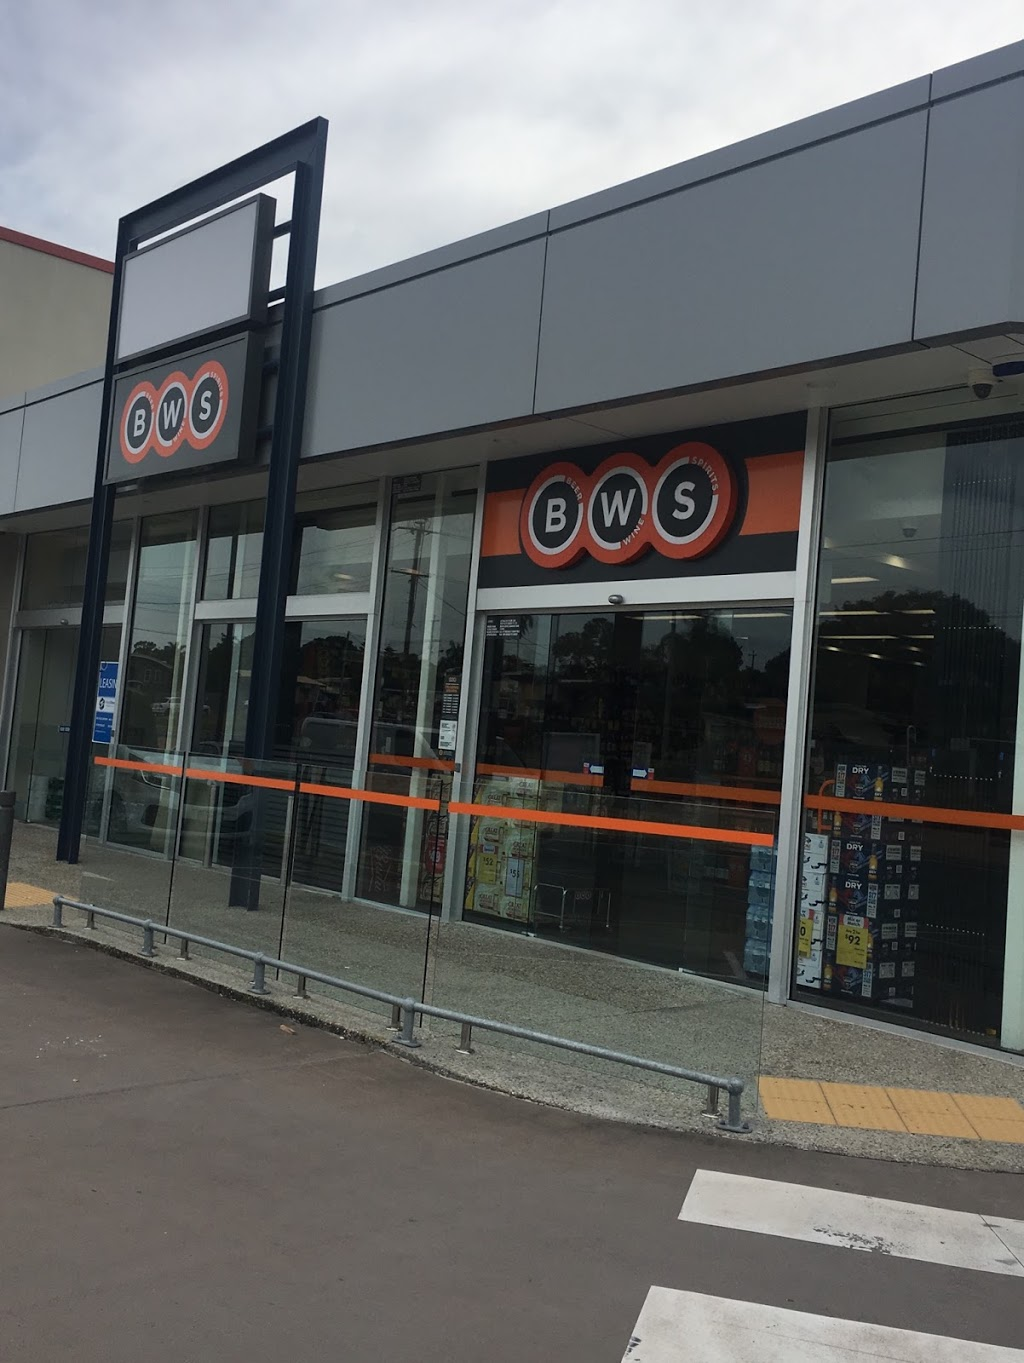 BWS Southport Smith St | store | 2 Curtin Ave, Southport QLD 4215, Australia | 0755270678 OR +61 7 5527 0678